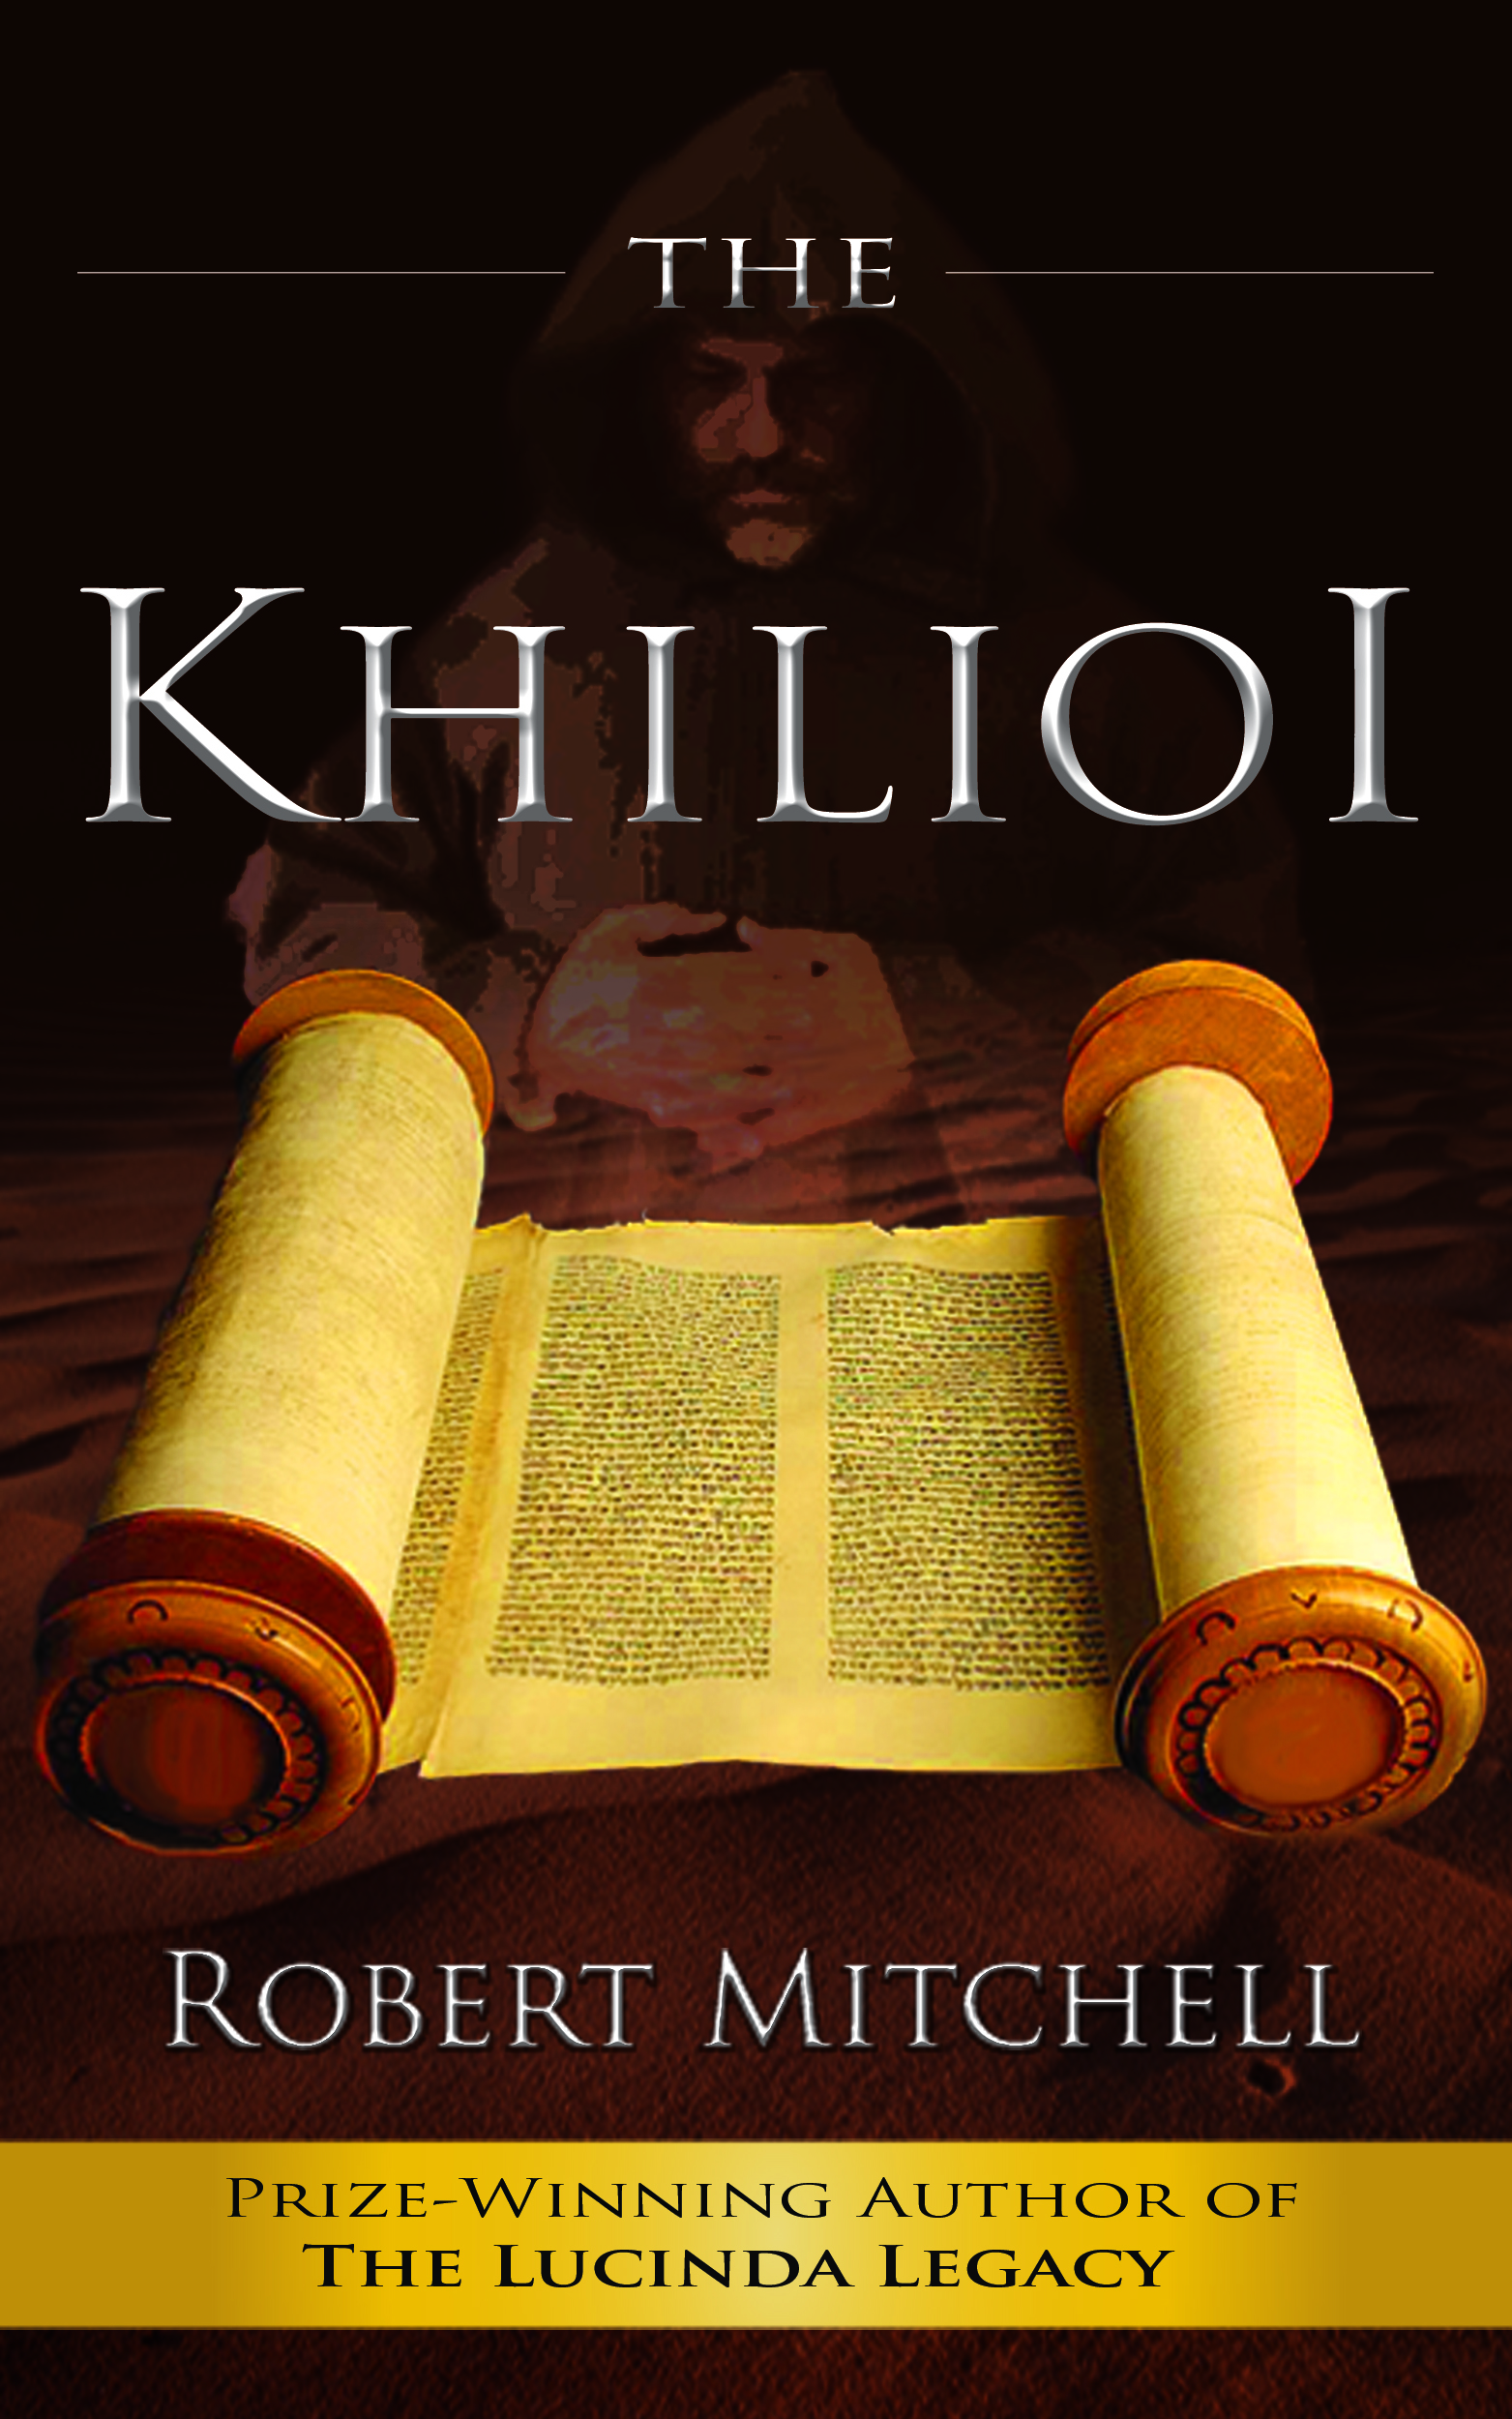 Book Cover Design by kowreck - Entry No. 79 in the Book Cover Design Contest The Khilioi Book Cover Design.